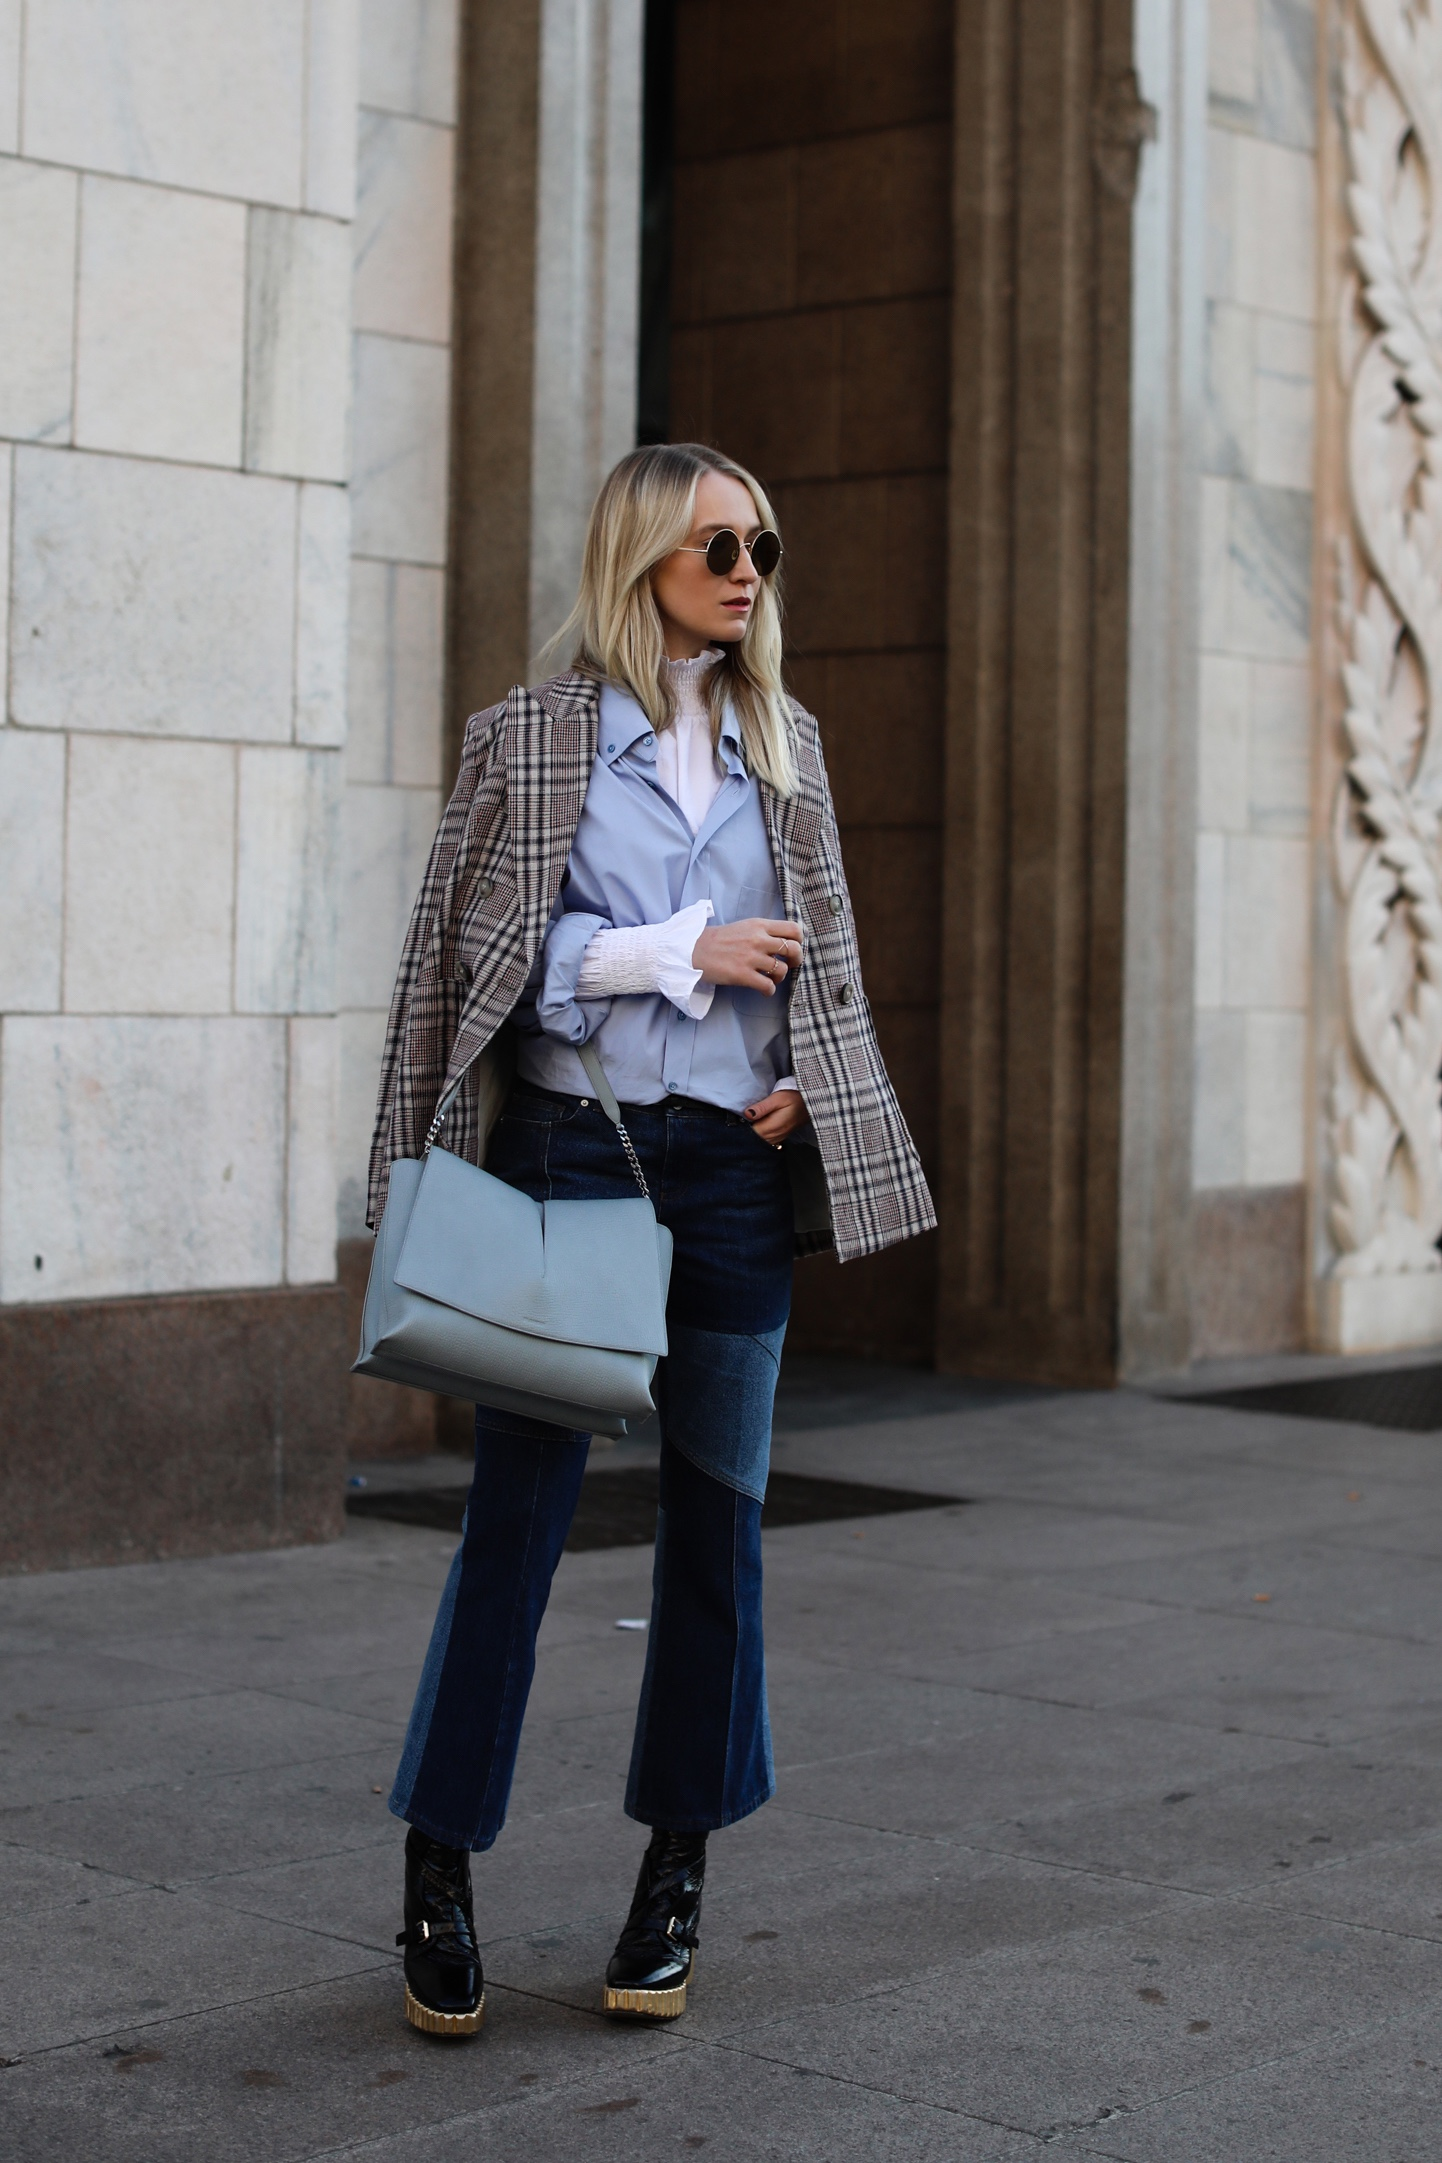 Style-Shiver-Outfits-Milan-Fashion-Week-A-W-2017-3-1